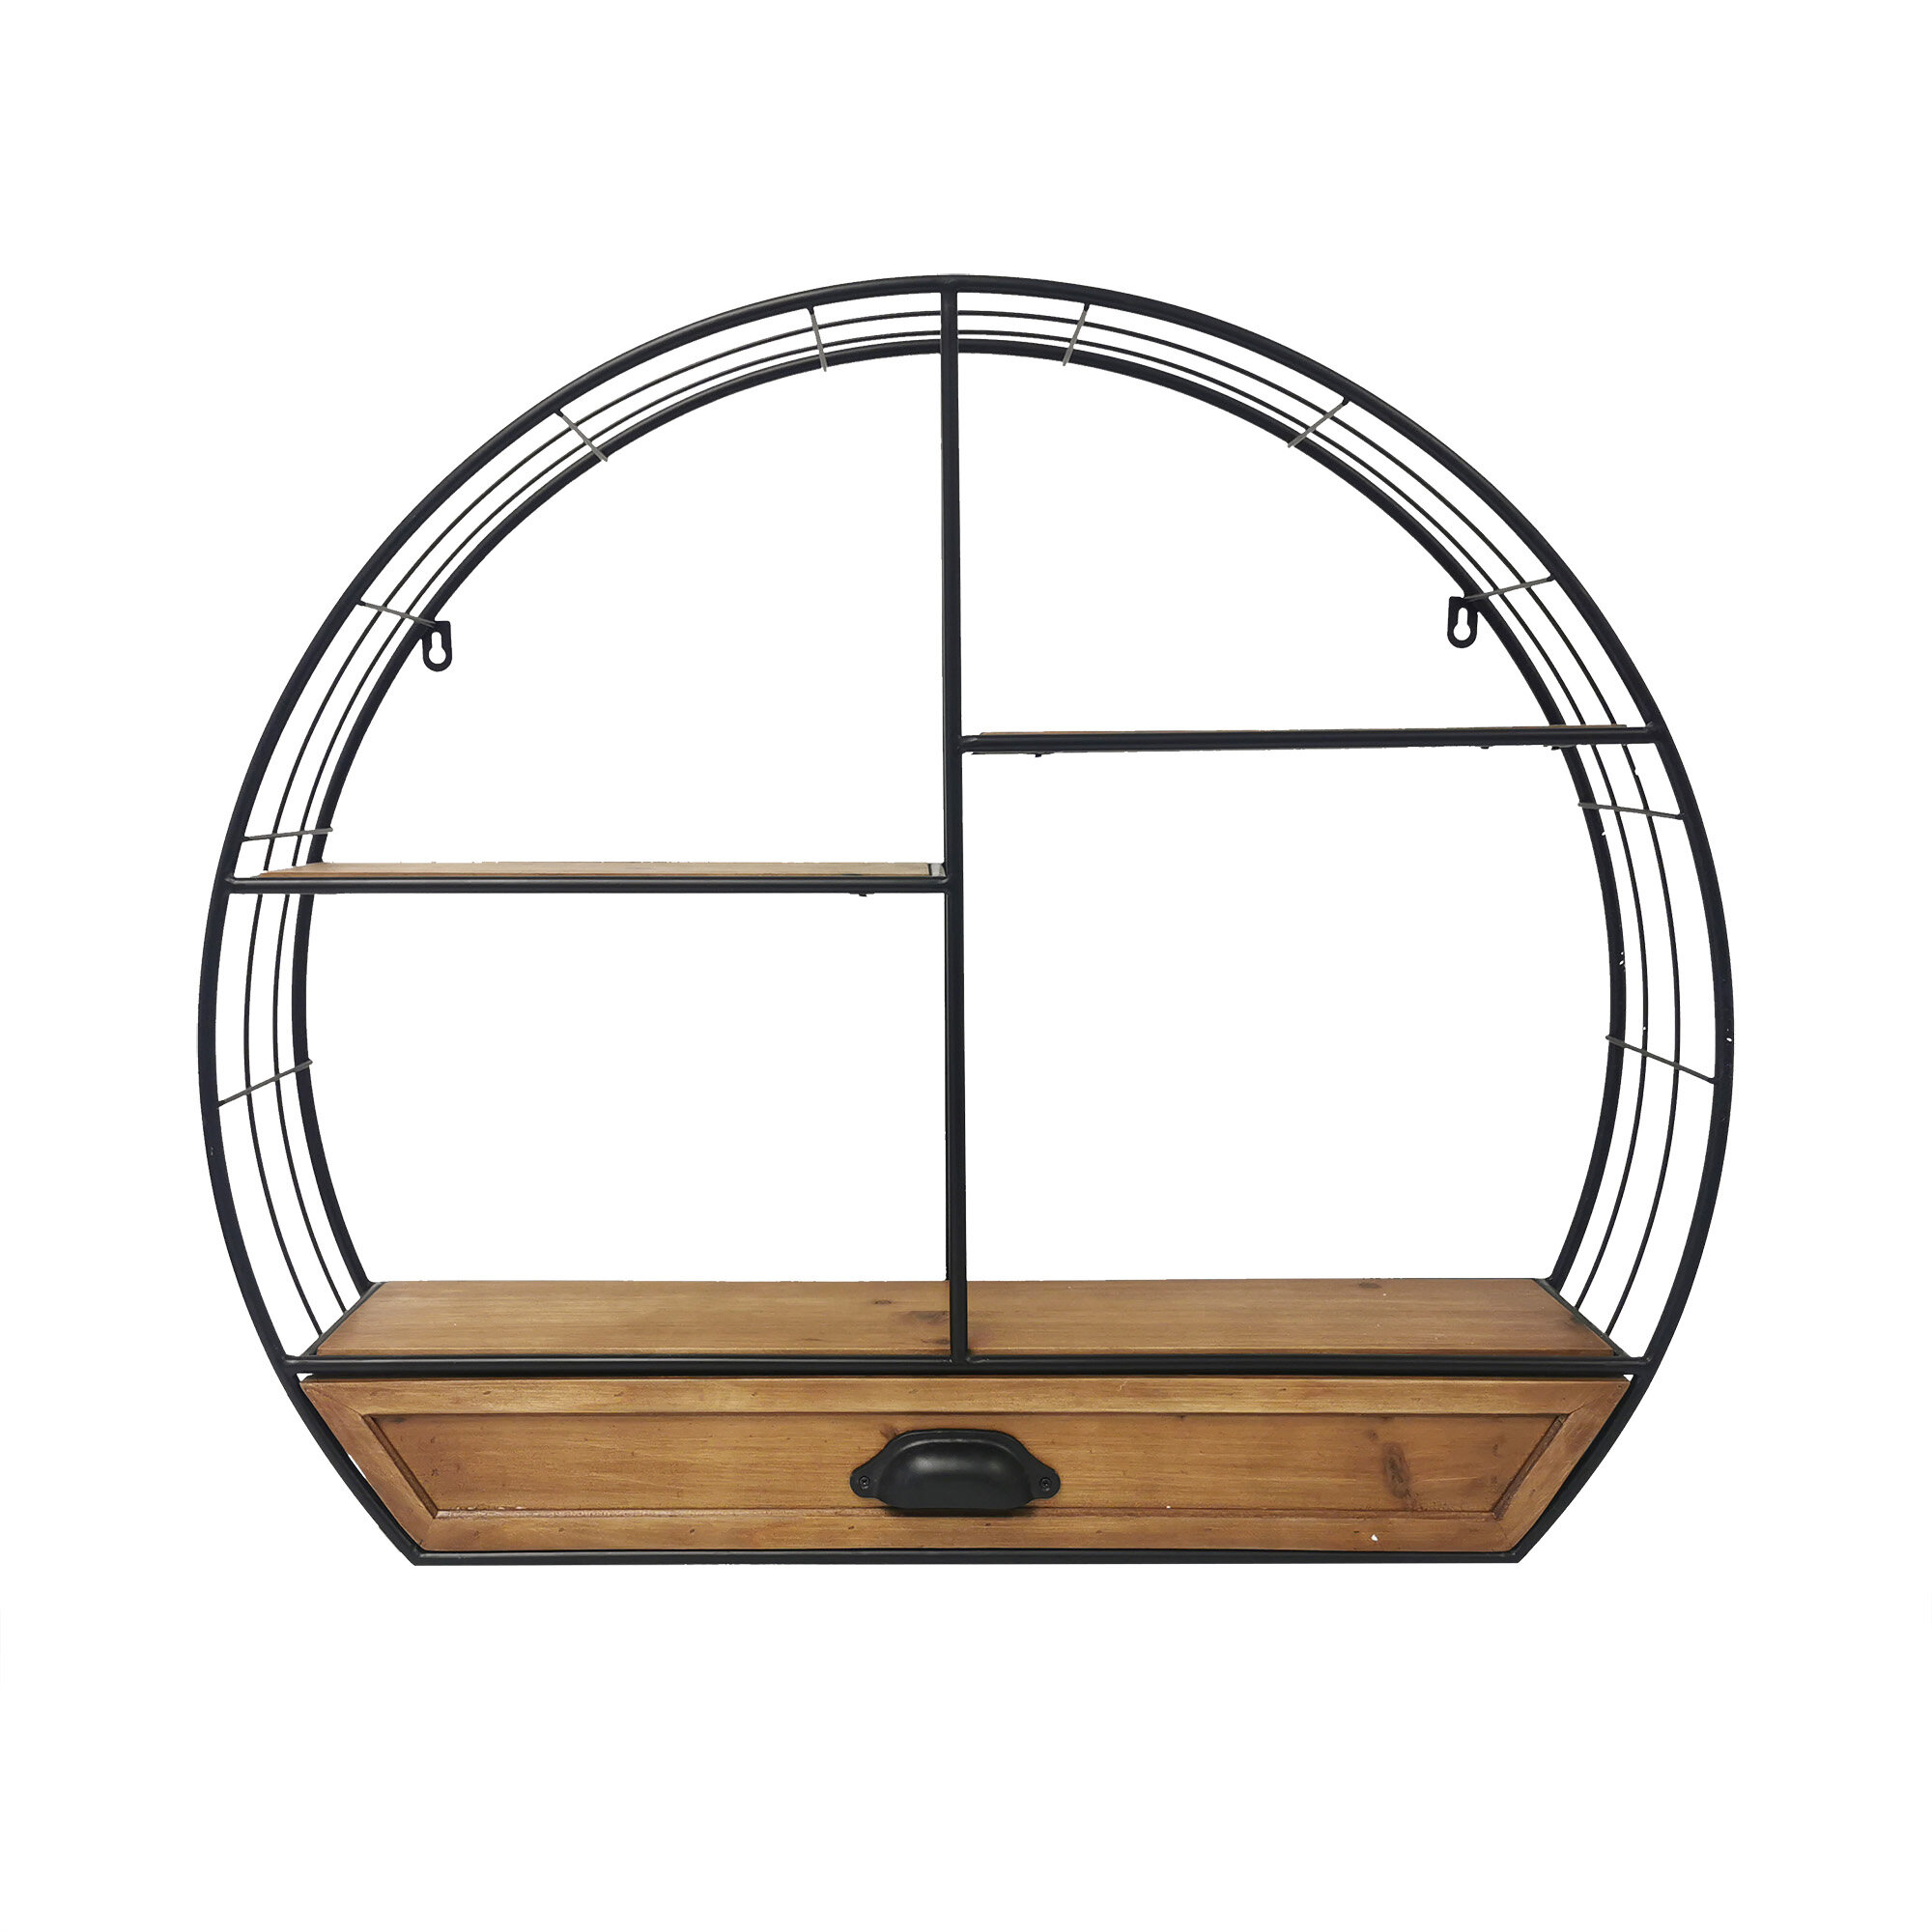 Carina S Collection Spuglio 3 Piece Circle Tiered Shelf With Drawer Wayfair Ca